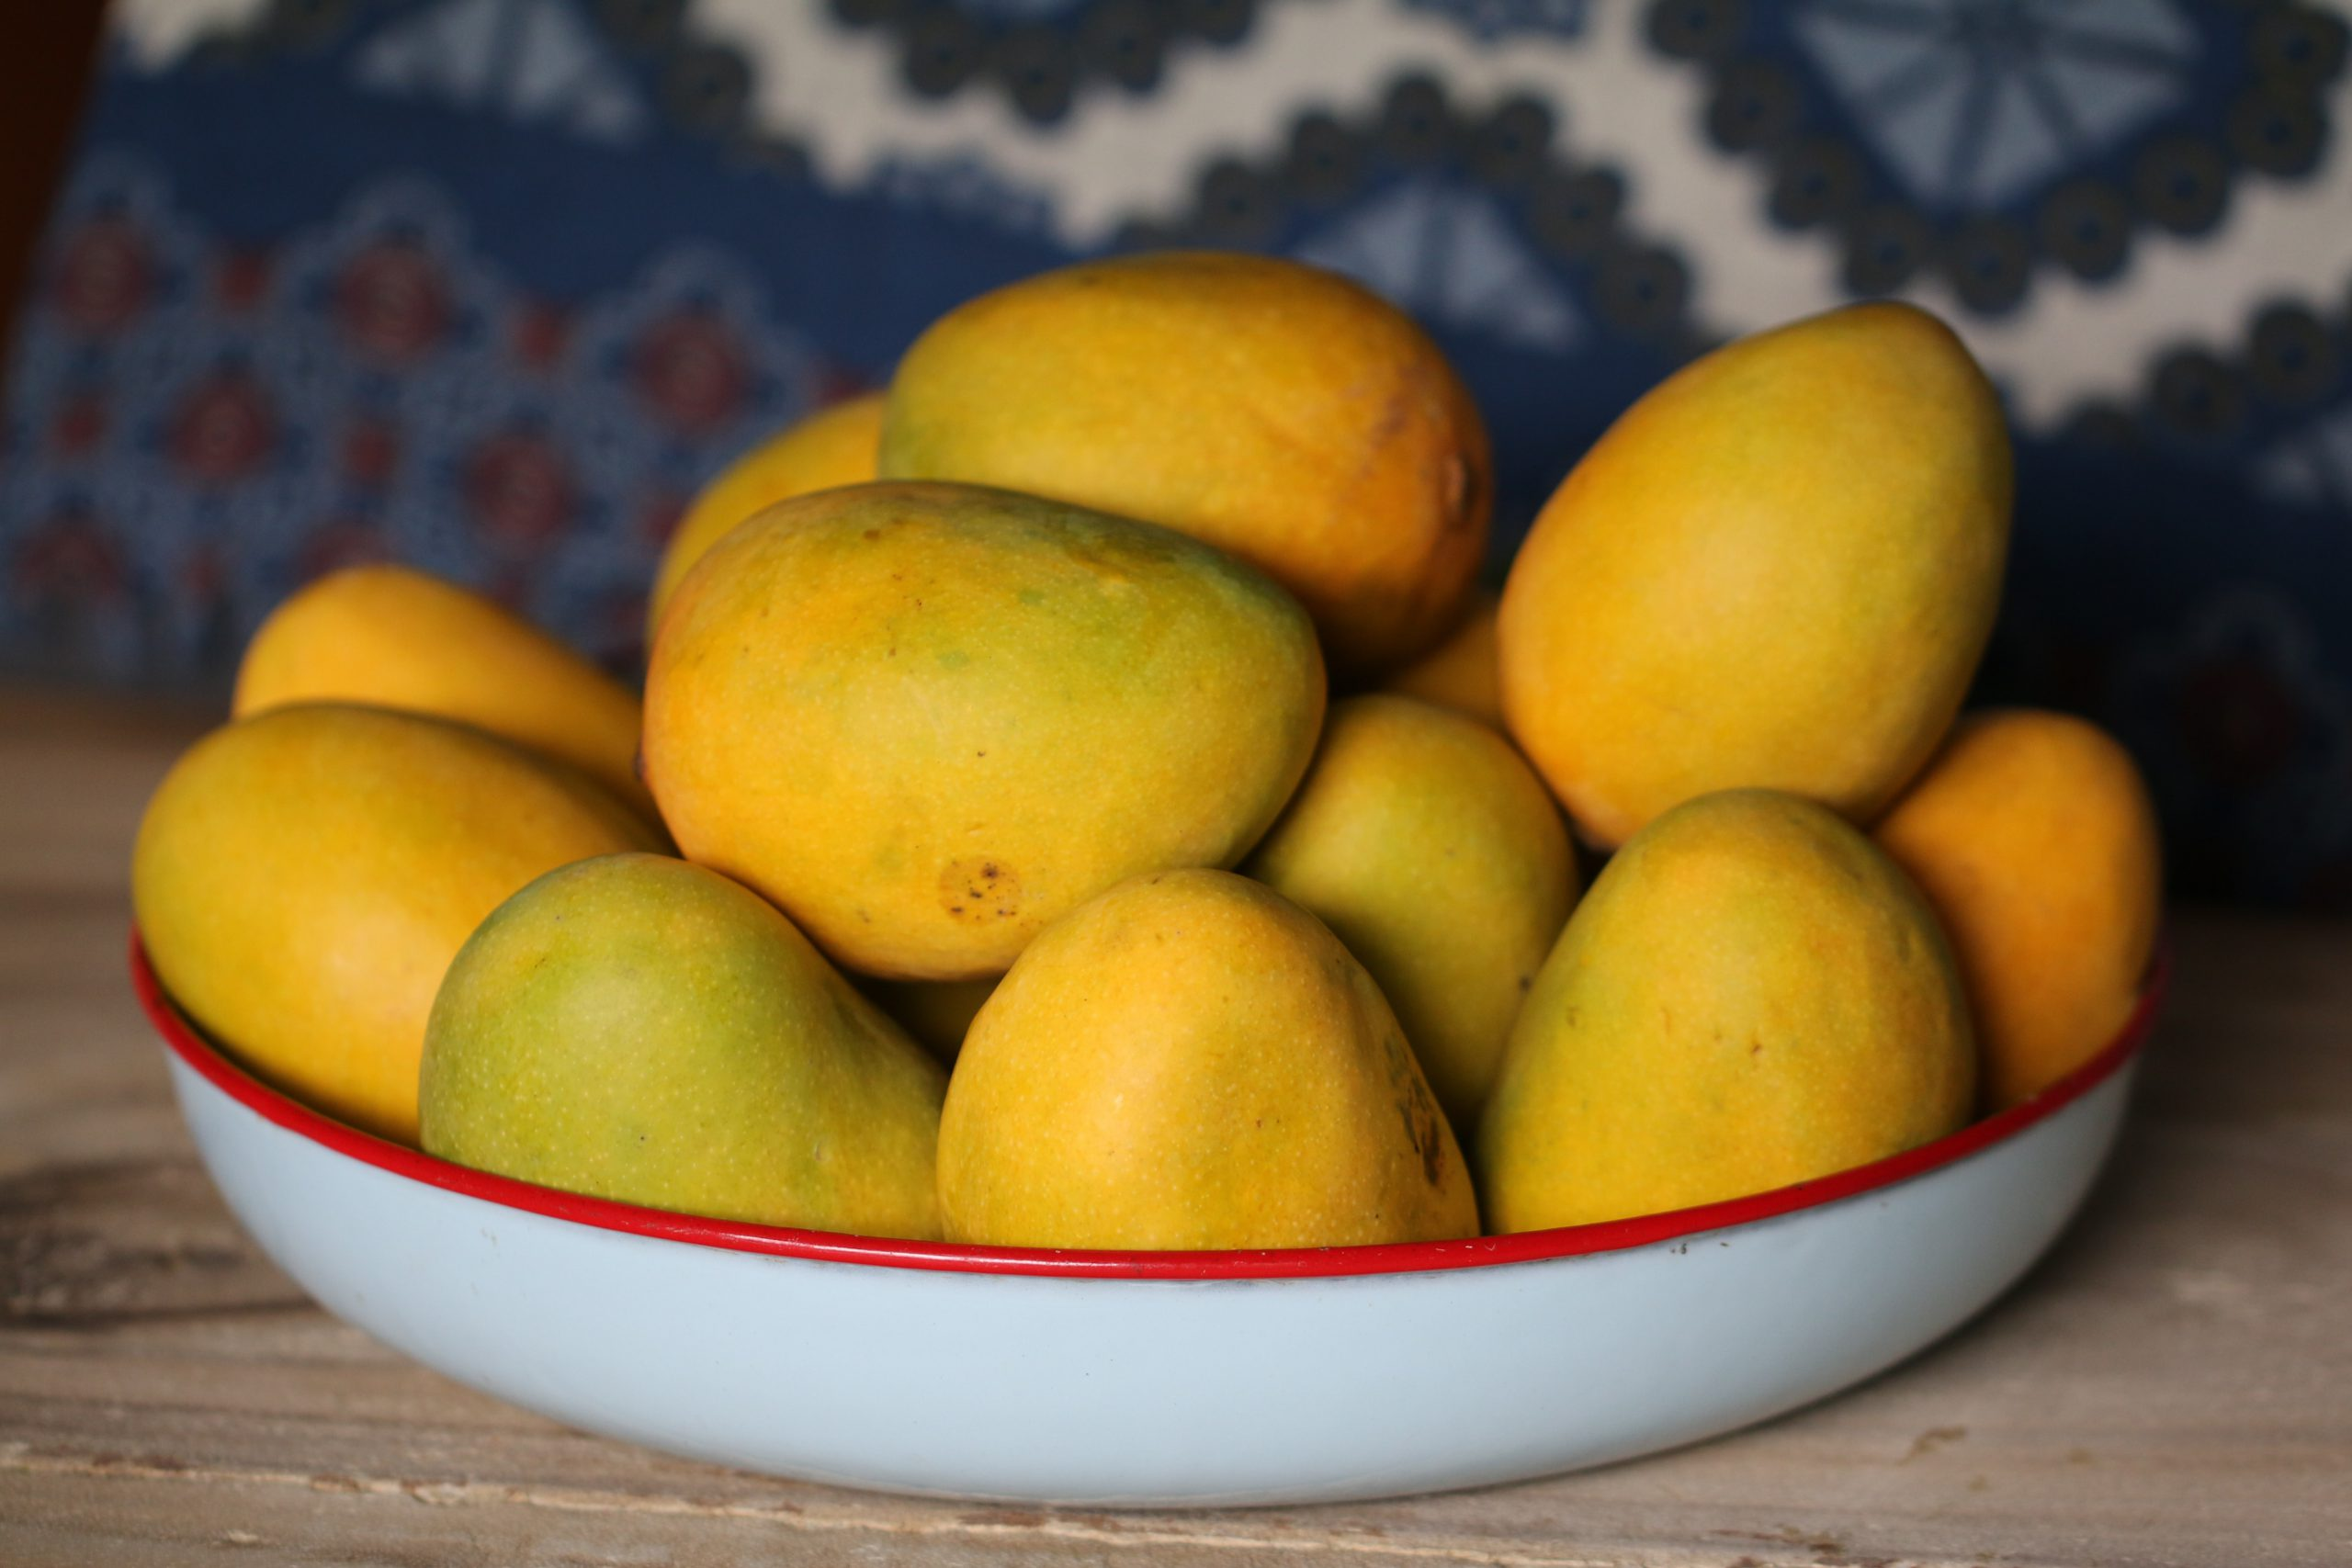 mangoes are summer season fruit